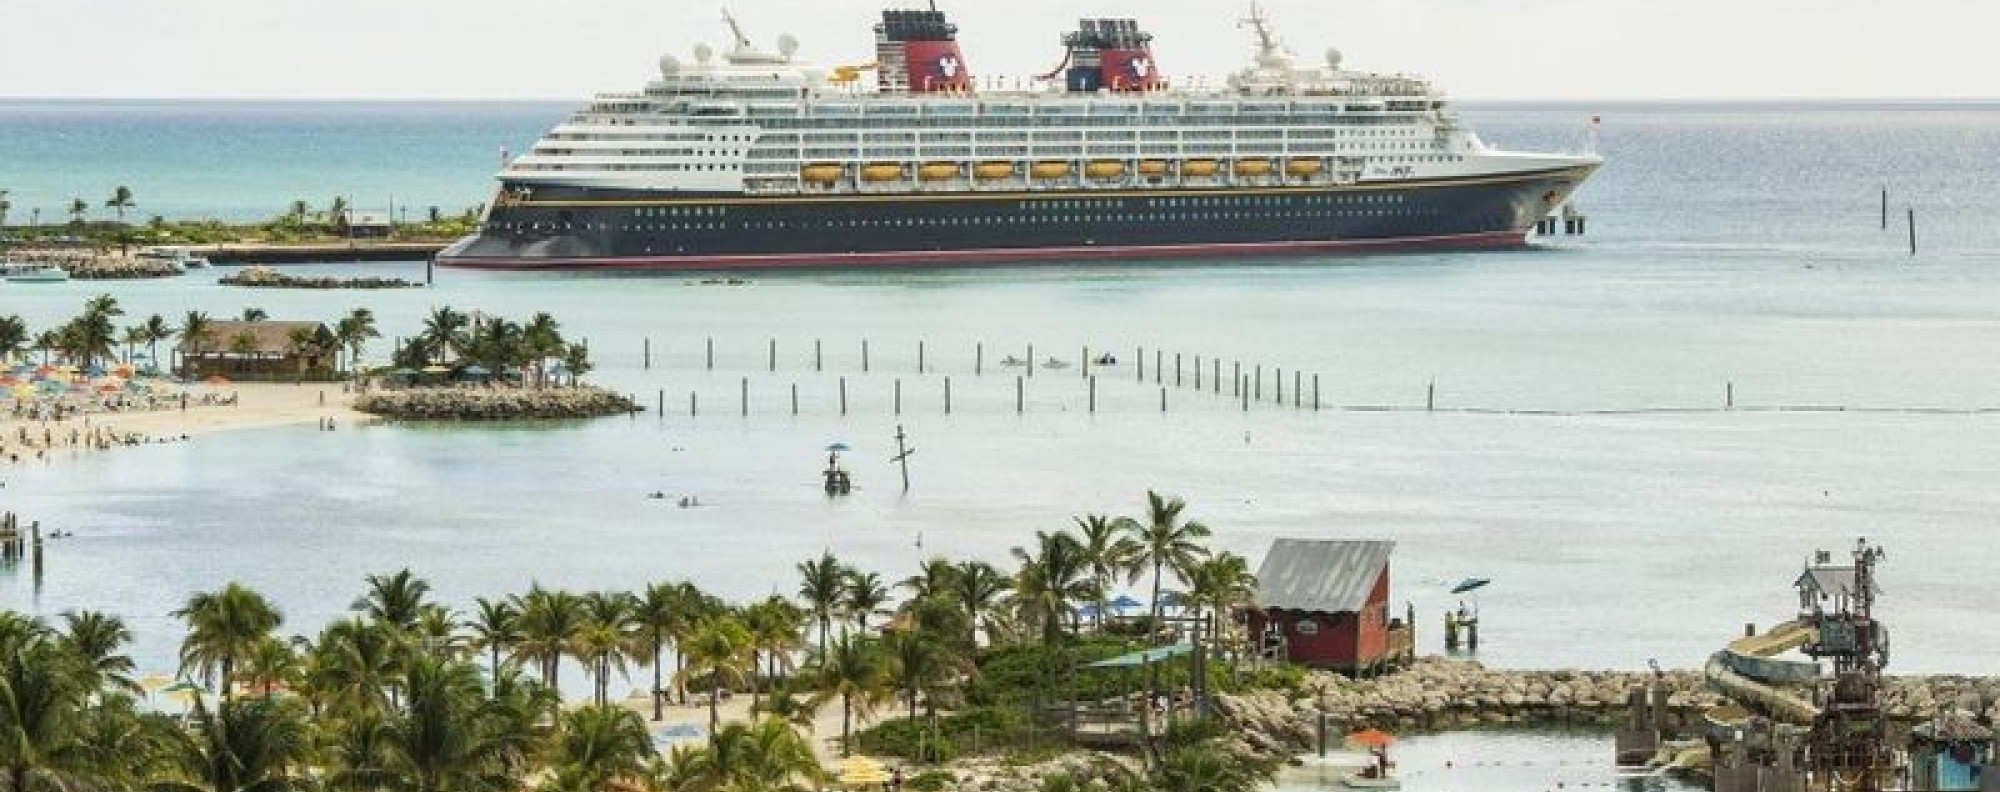 The Disney Magic docks at Castaway Cay, Disney's private island in the Bahamas. Photo: Matt Stroshane, courtesy of Disney